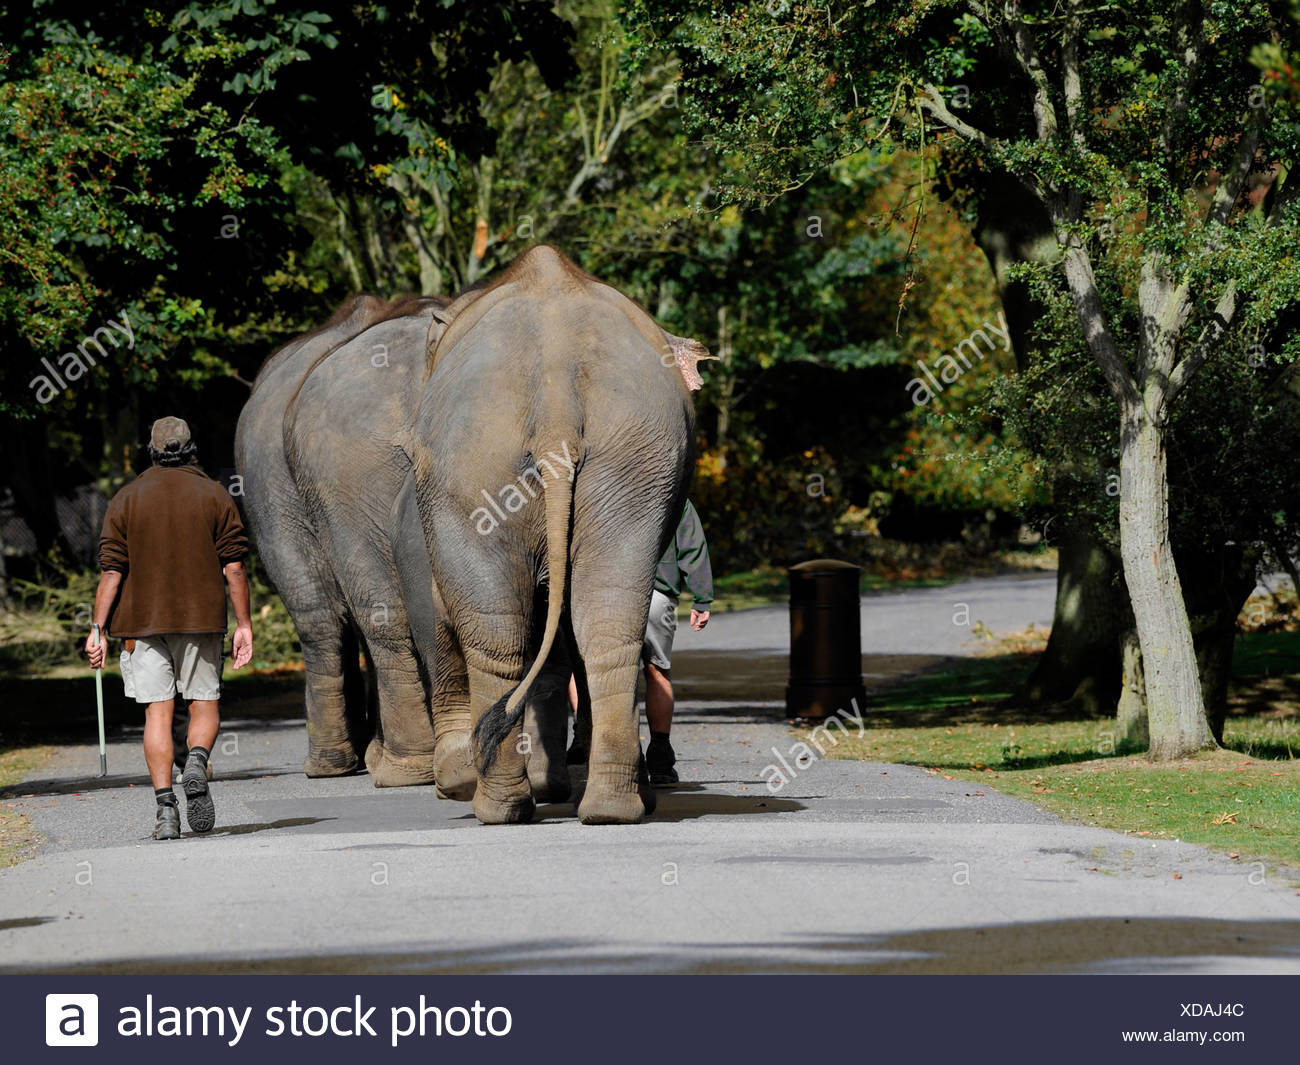 Elephants walking in a line, at a slow pace. - Stock Image